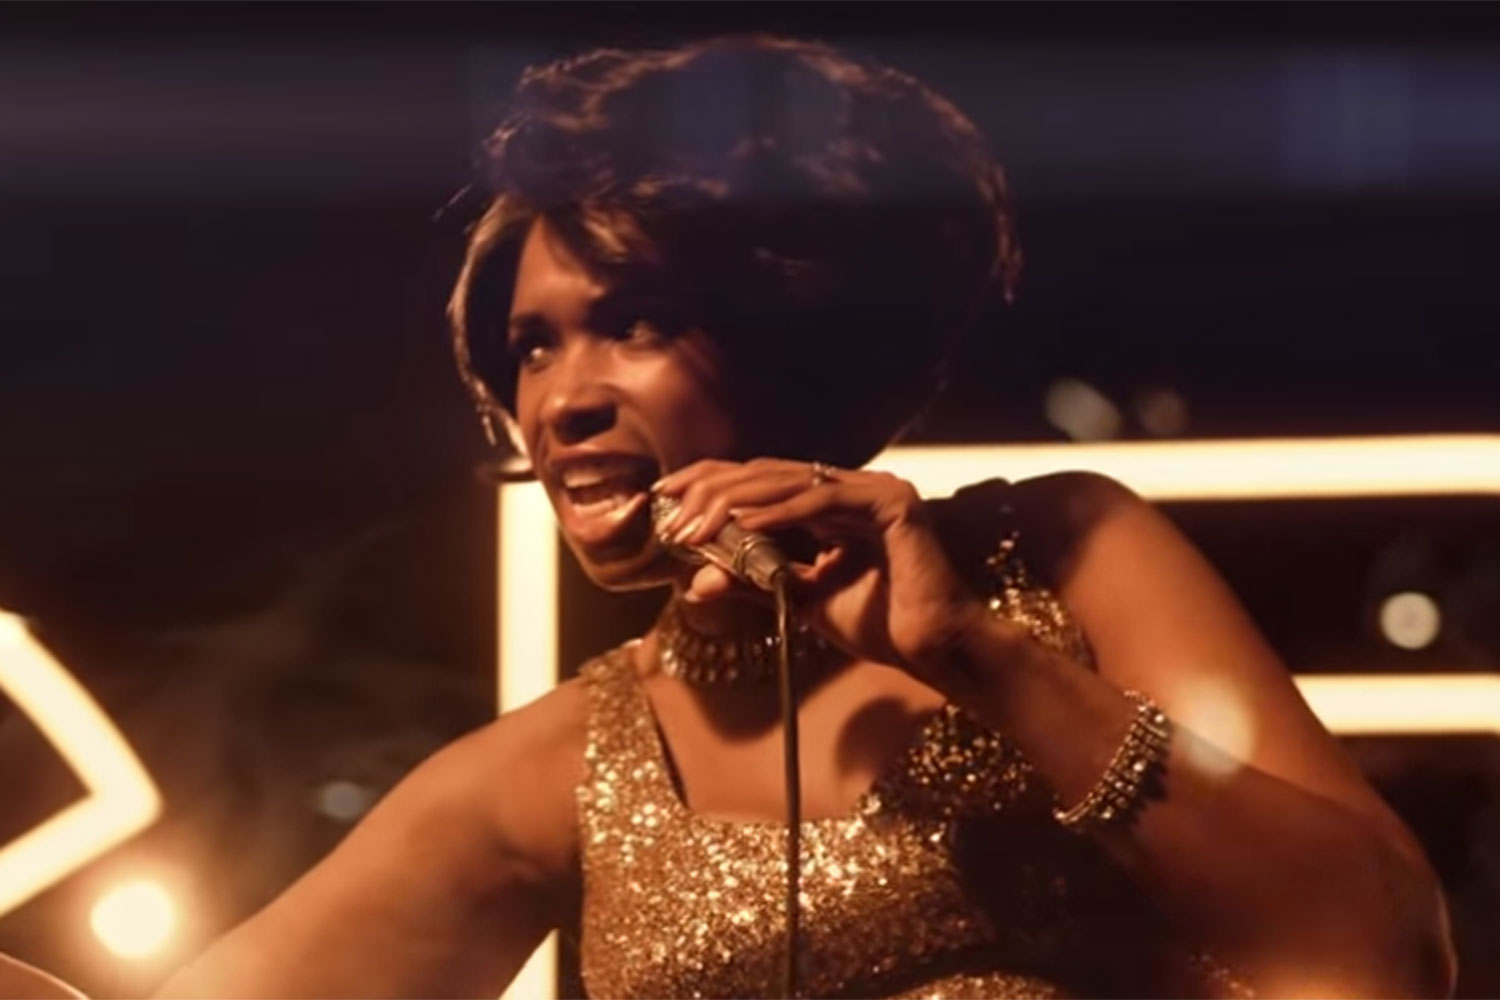 Jennifer Hudson is Aretha Franklin